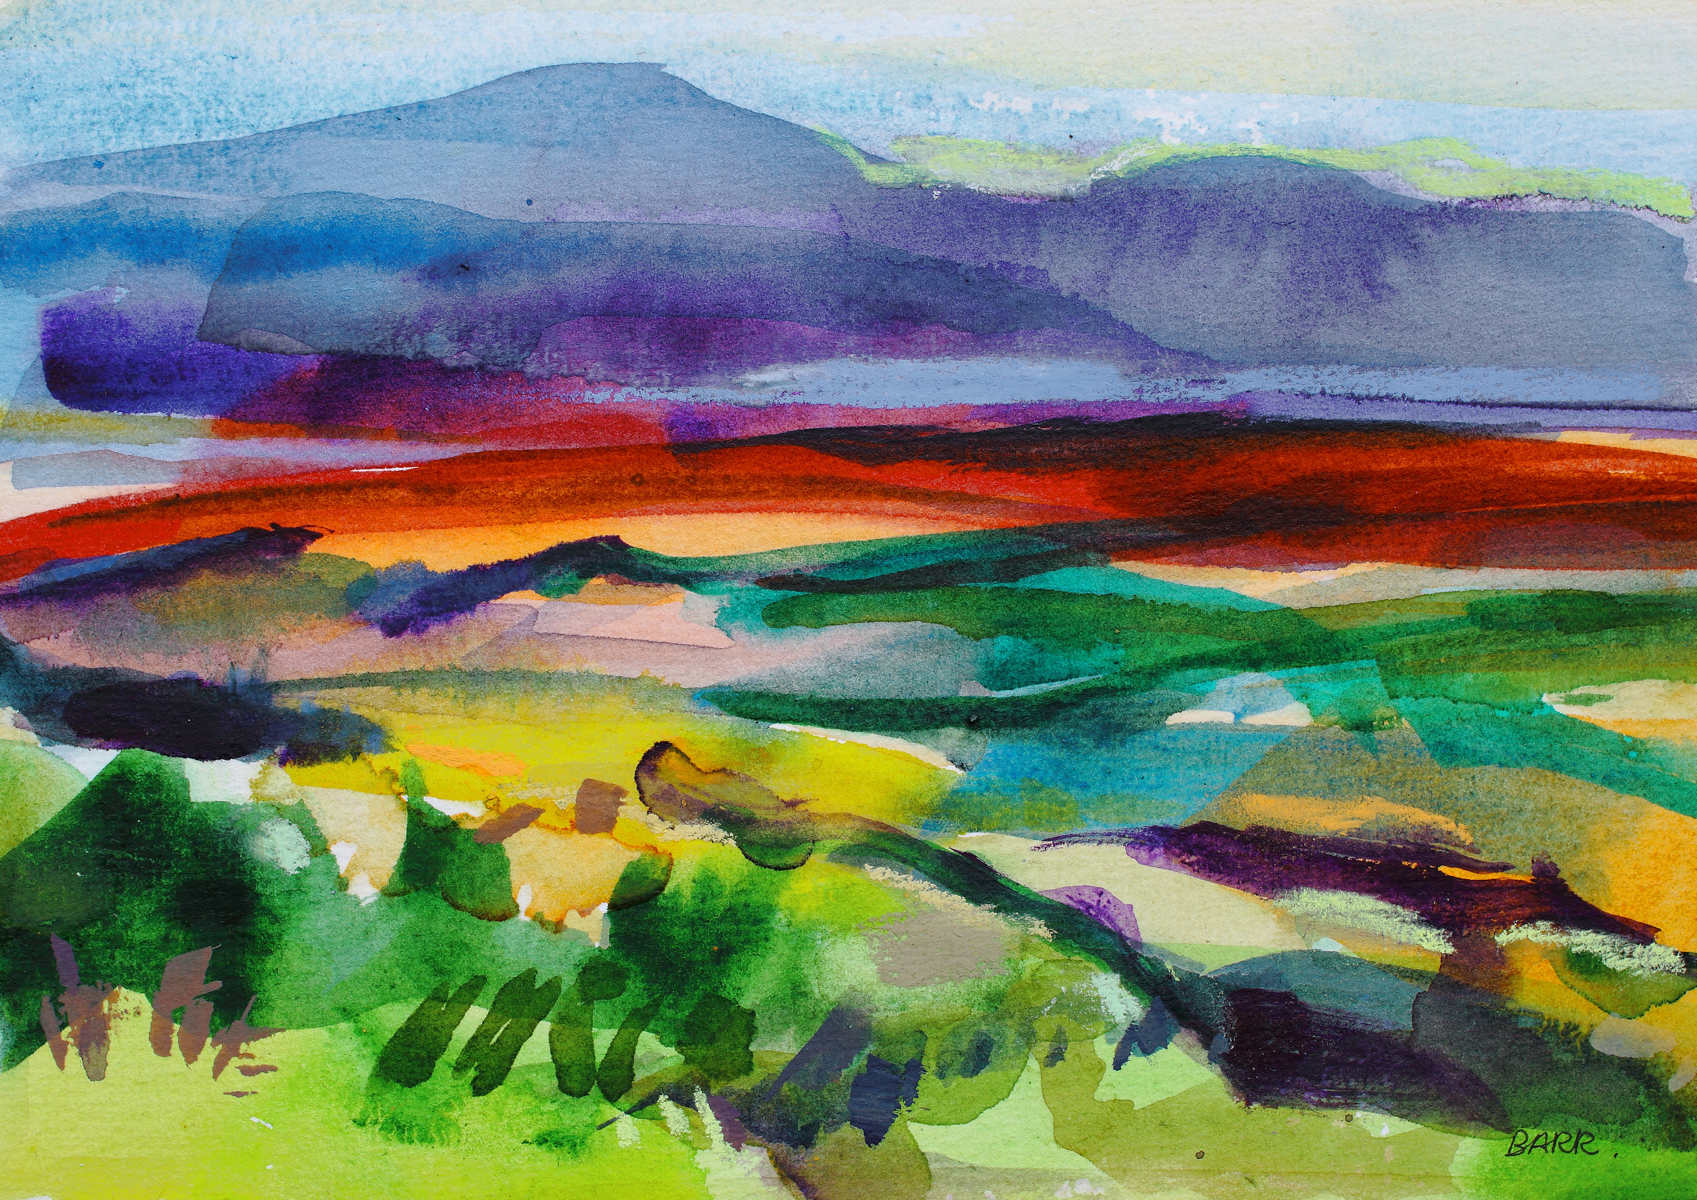 Watercolour titled Blue Hills by Shona Barr